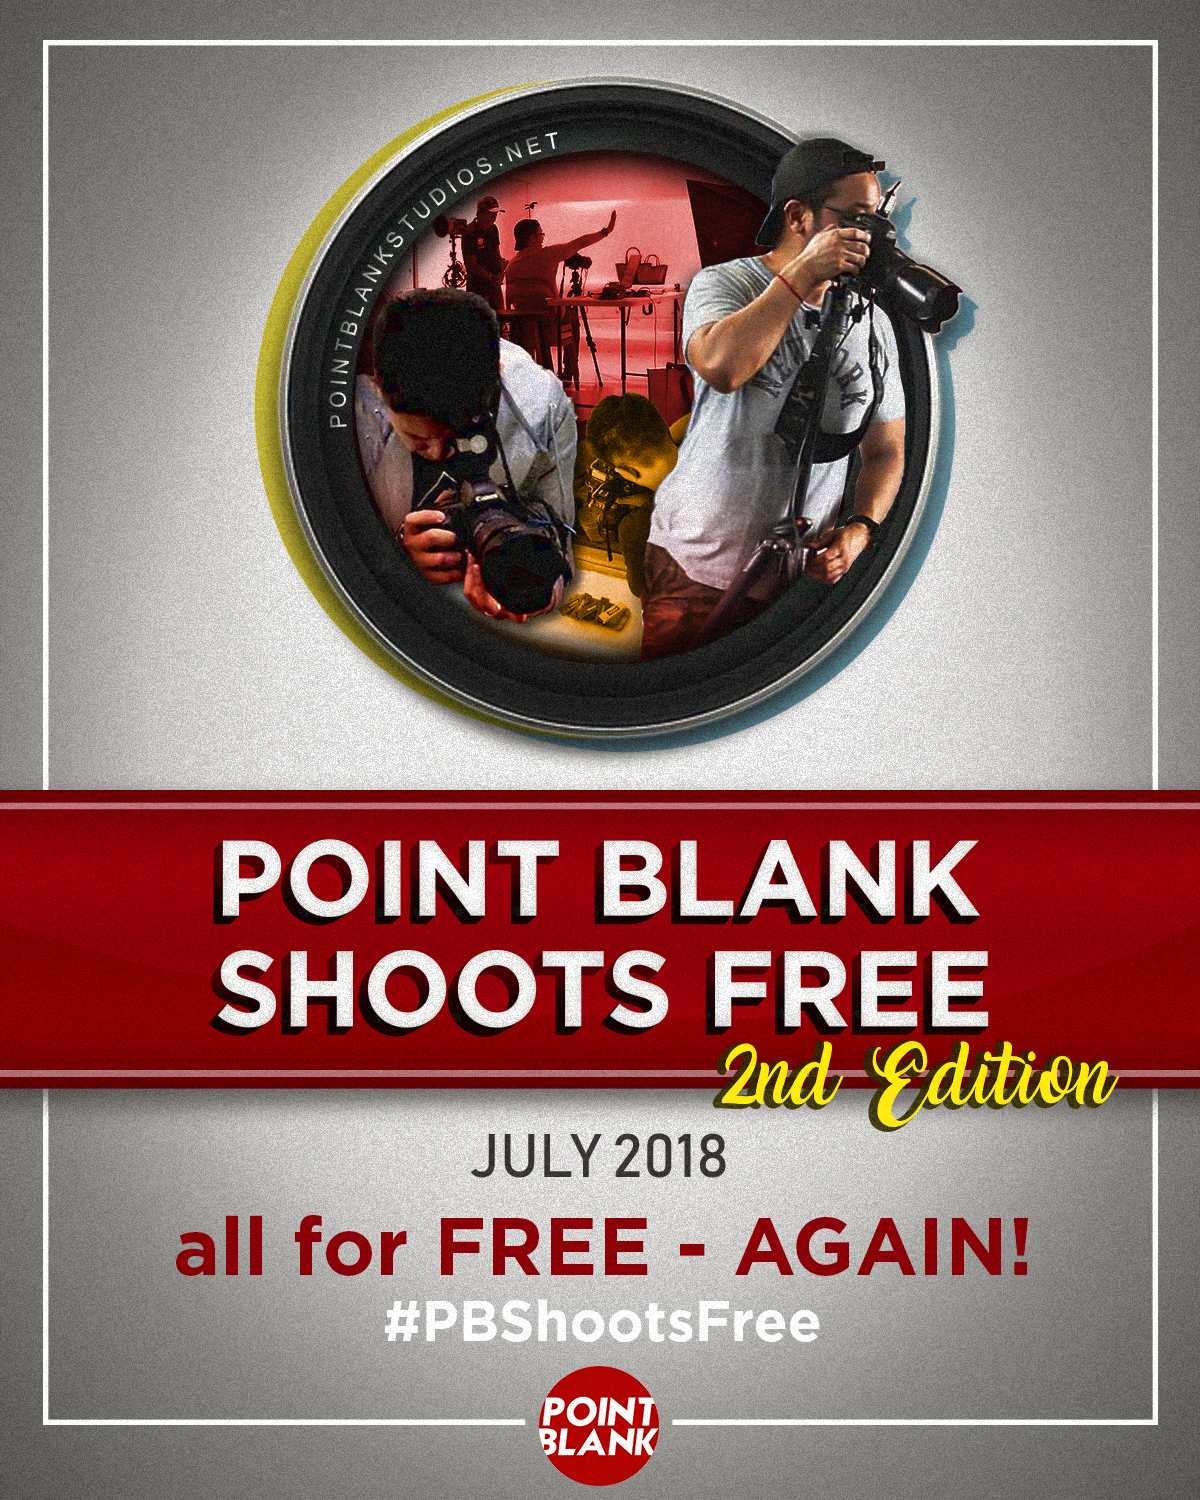 #PBShootsFree PART 2!!